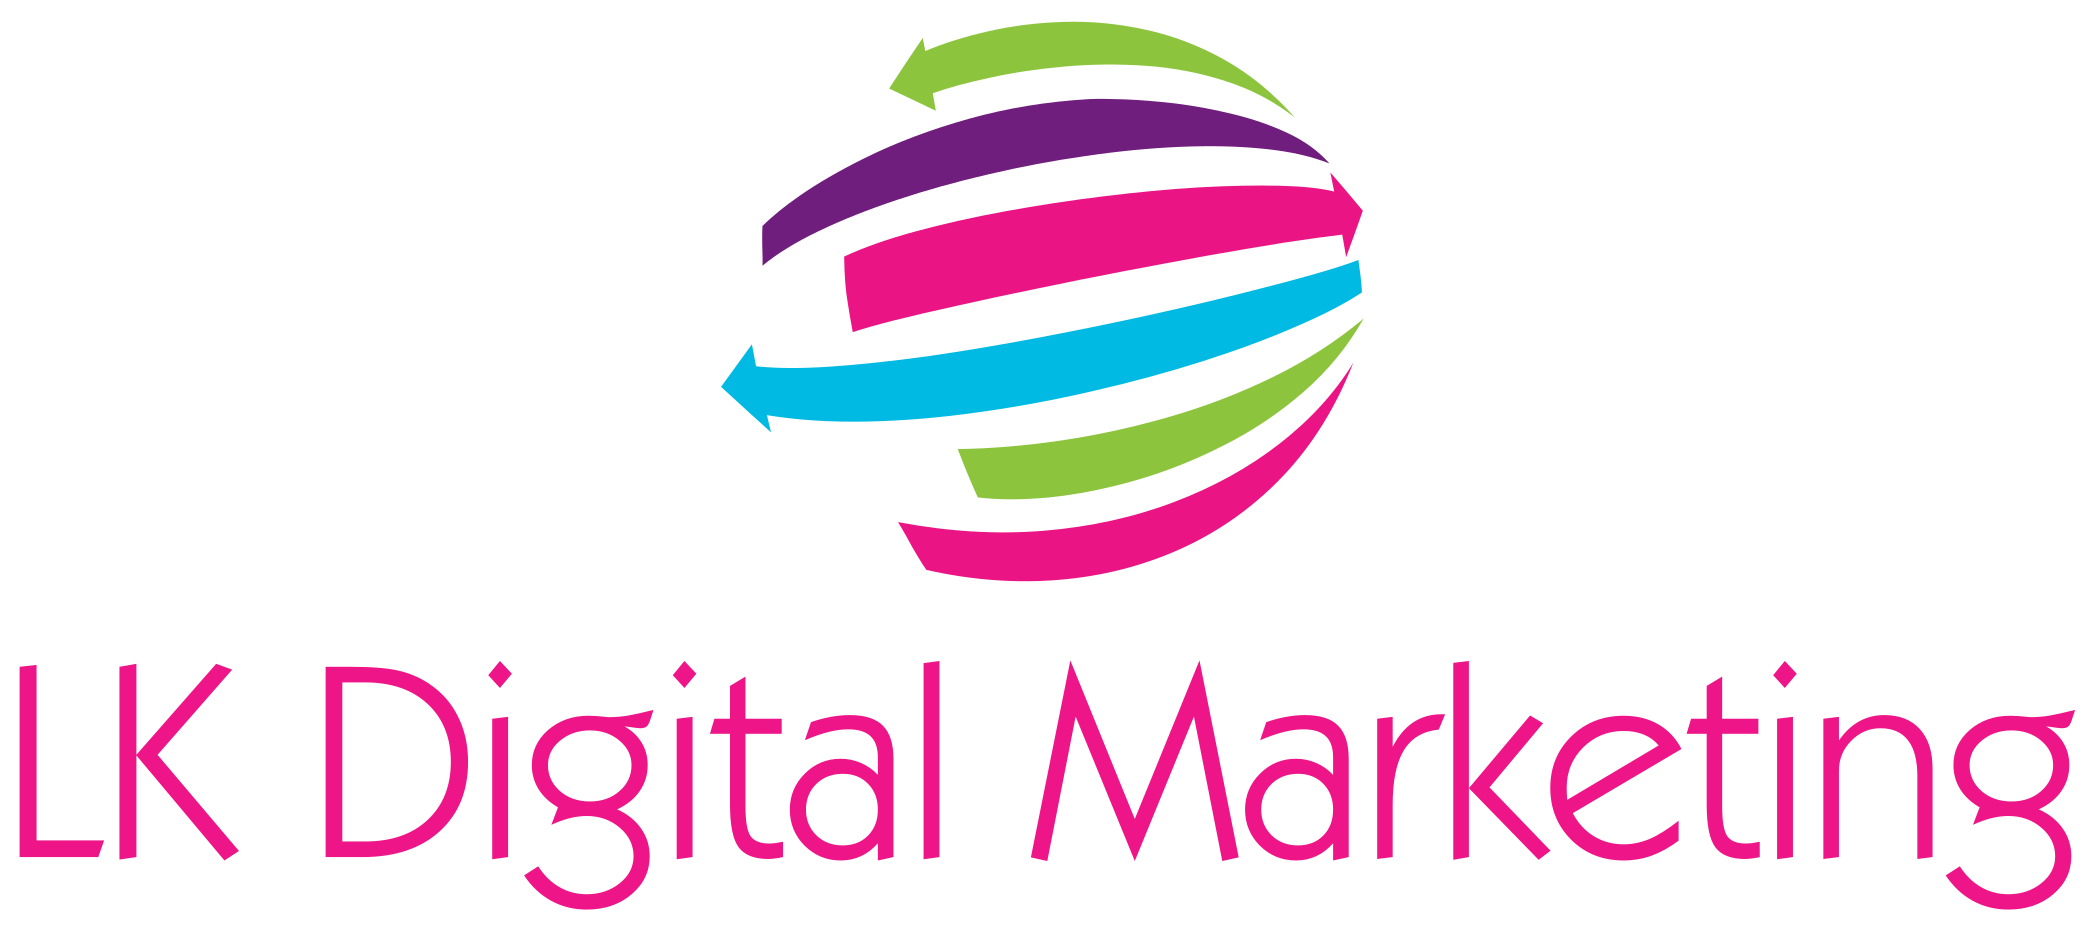 LK Digital Marketing